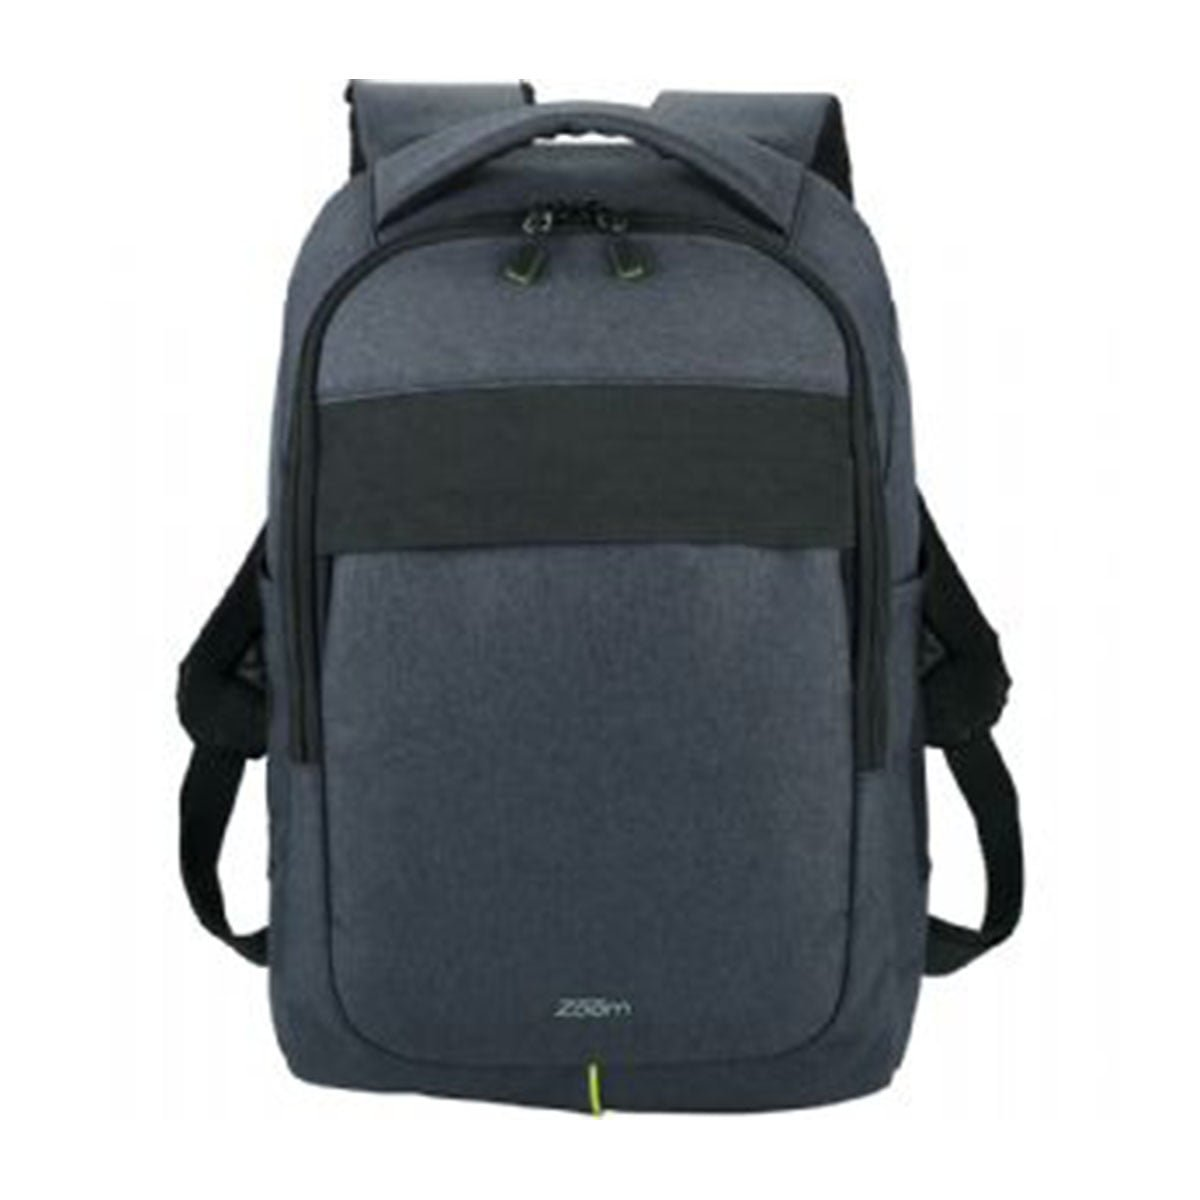 Zoom® Power Stretch Compu-Backpack-Black / Charcoal